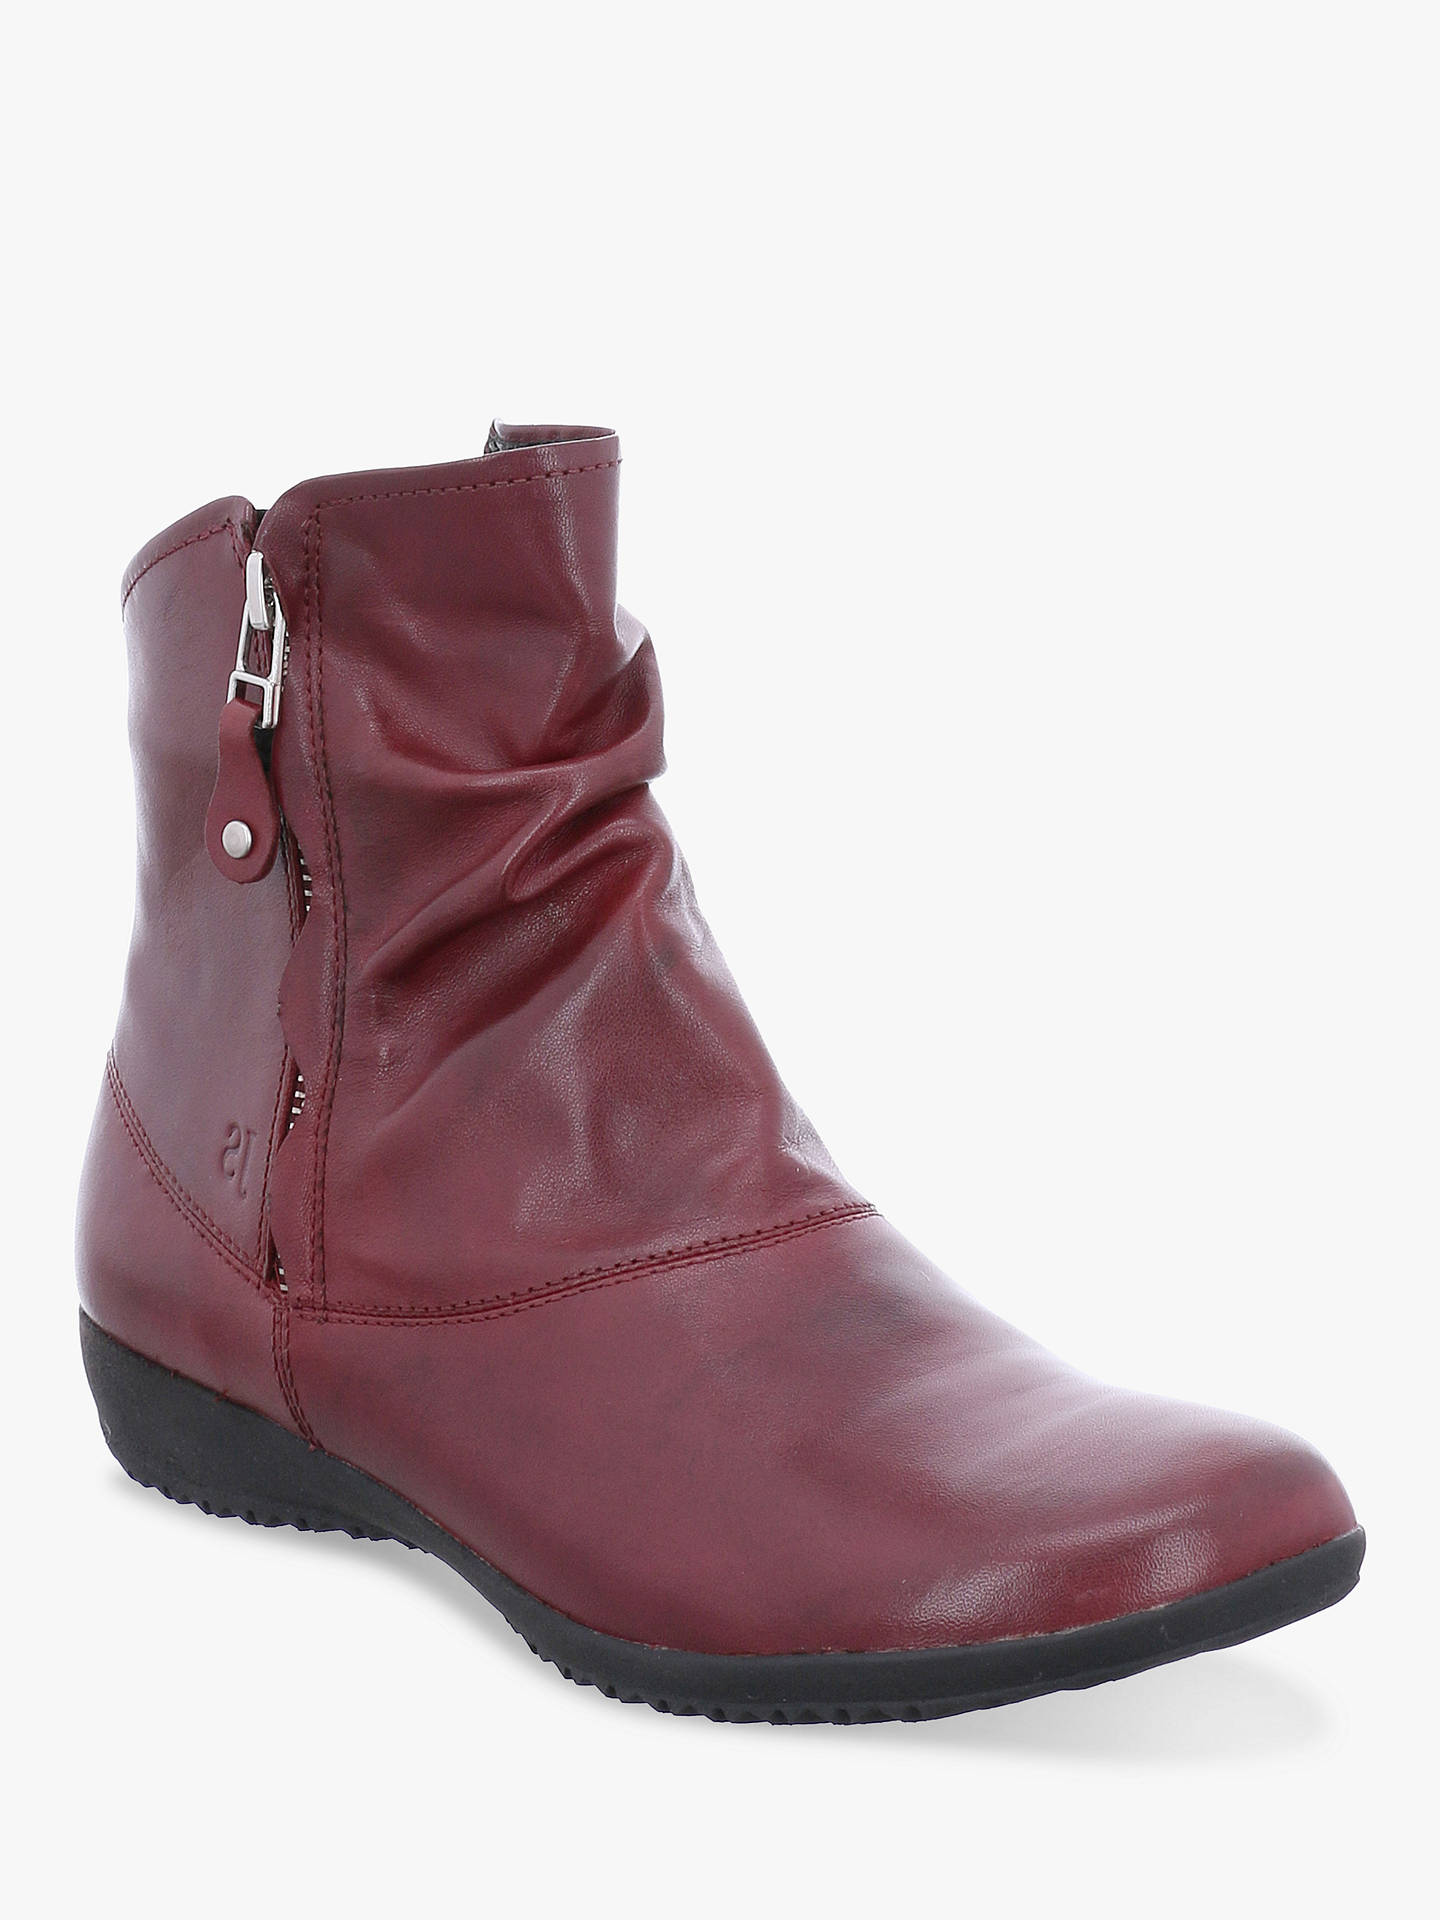 311c1b687bb37 Josef Seibel Naly 24 Leather Ankle Boots, Boro